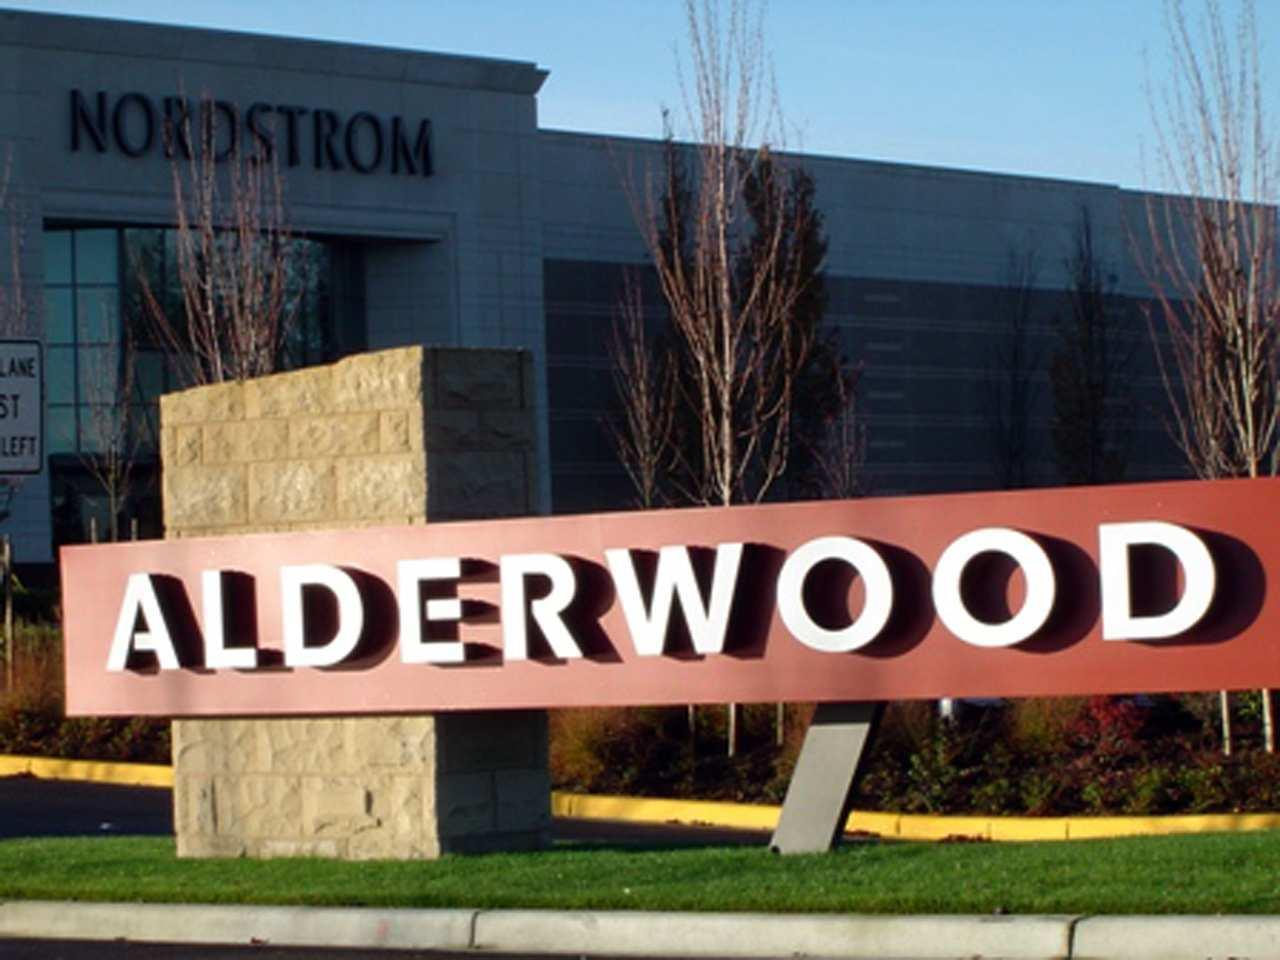 Movie times, buy movie tickets online, watch trailers and get directions to AMC Loews Alderwood Mall 16 in Lynnwood, WA. Find everything you need for your local movie theater near you. Tickets are $5 on Tuesdays for blockbusters, indies & everything in-between! Read More and Get Tickets.